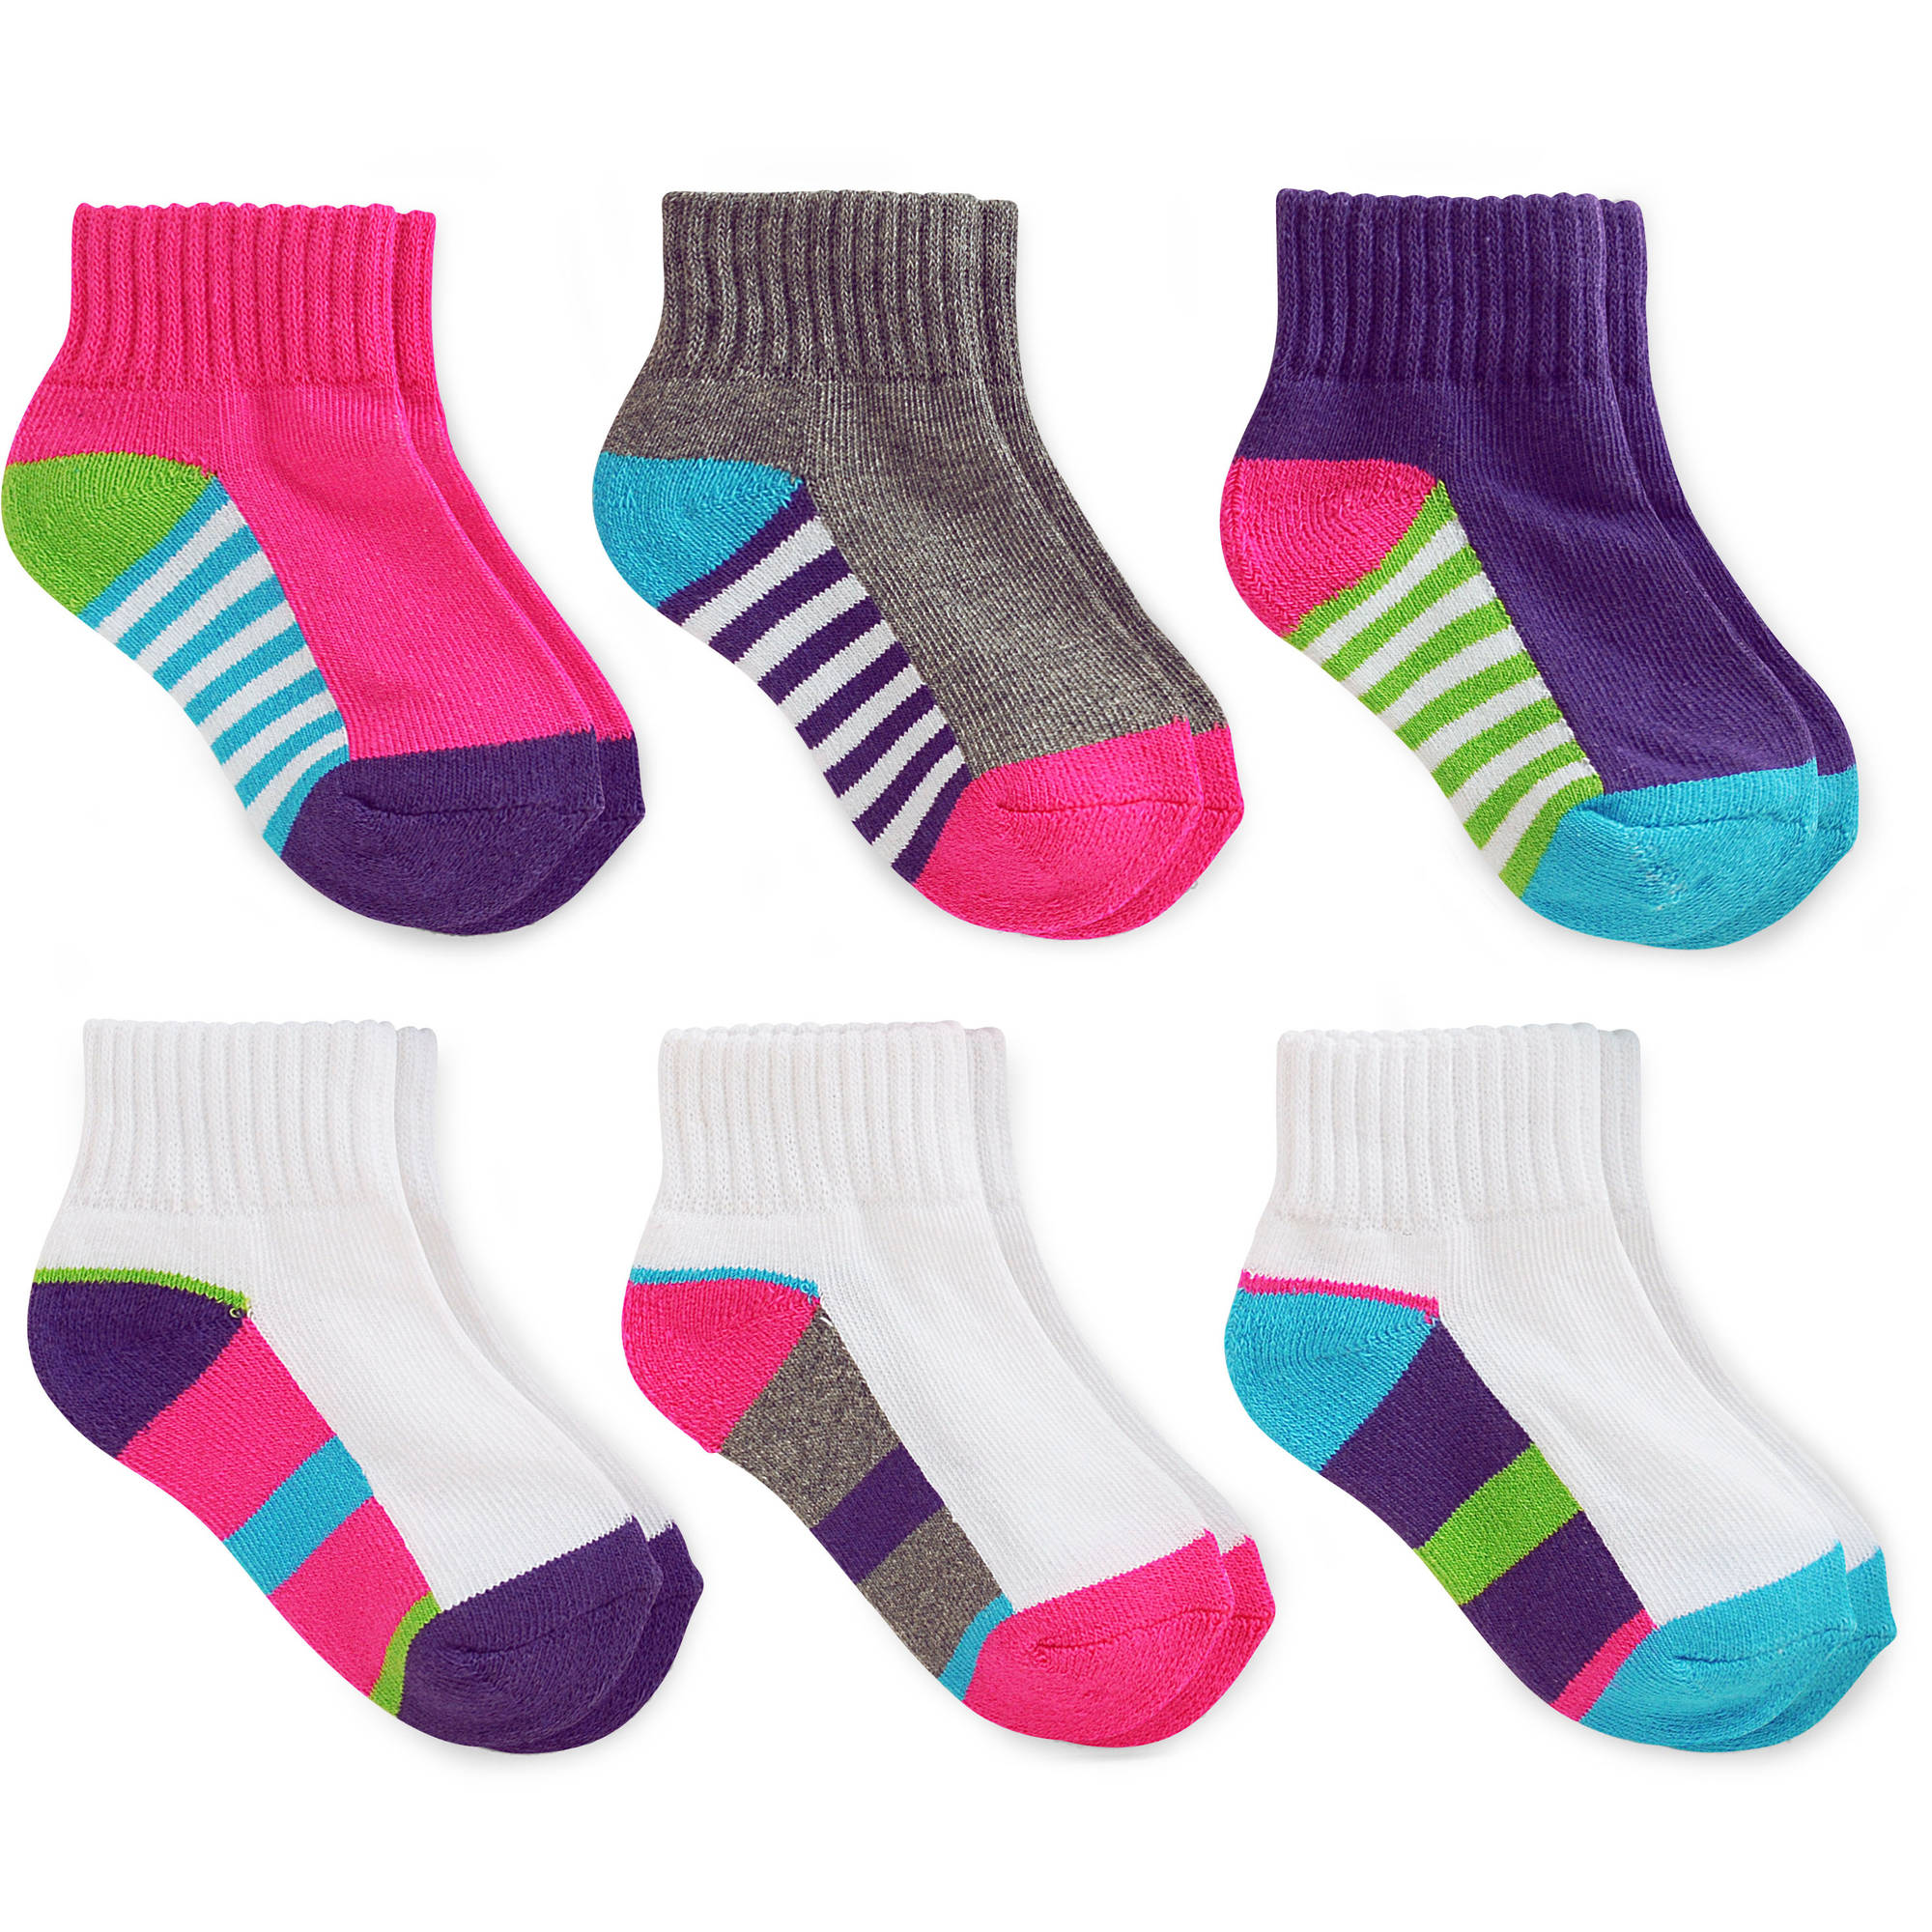 Garanimals Baby Toddler Girls' Colored Ankle Socks Ages NB-5T, 6-Pack